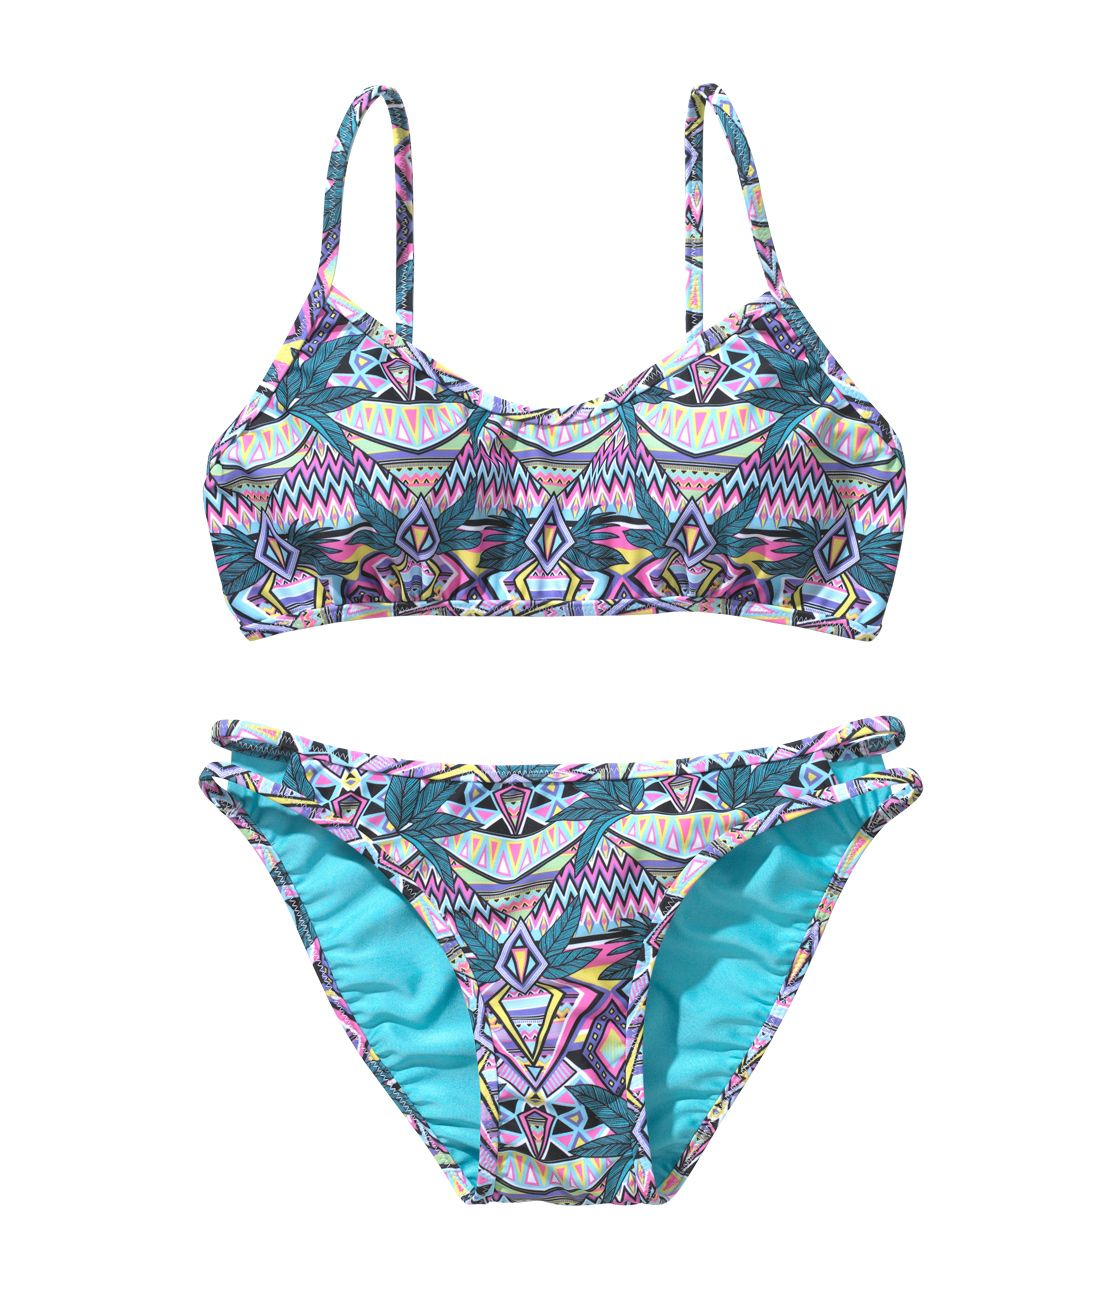 YM reversible swimsuit